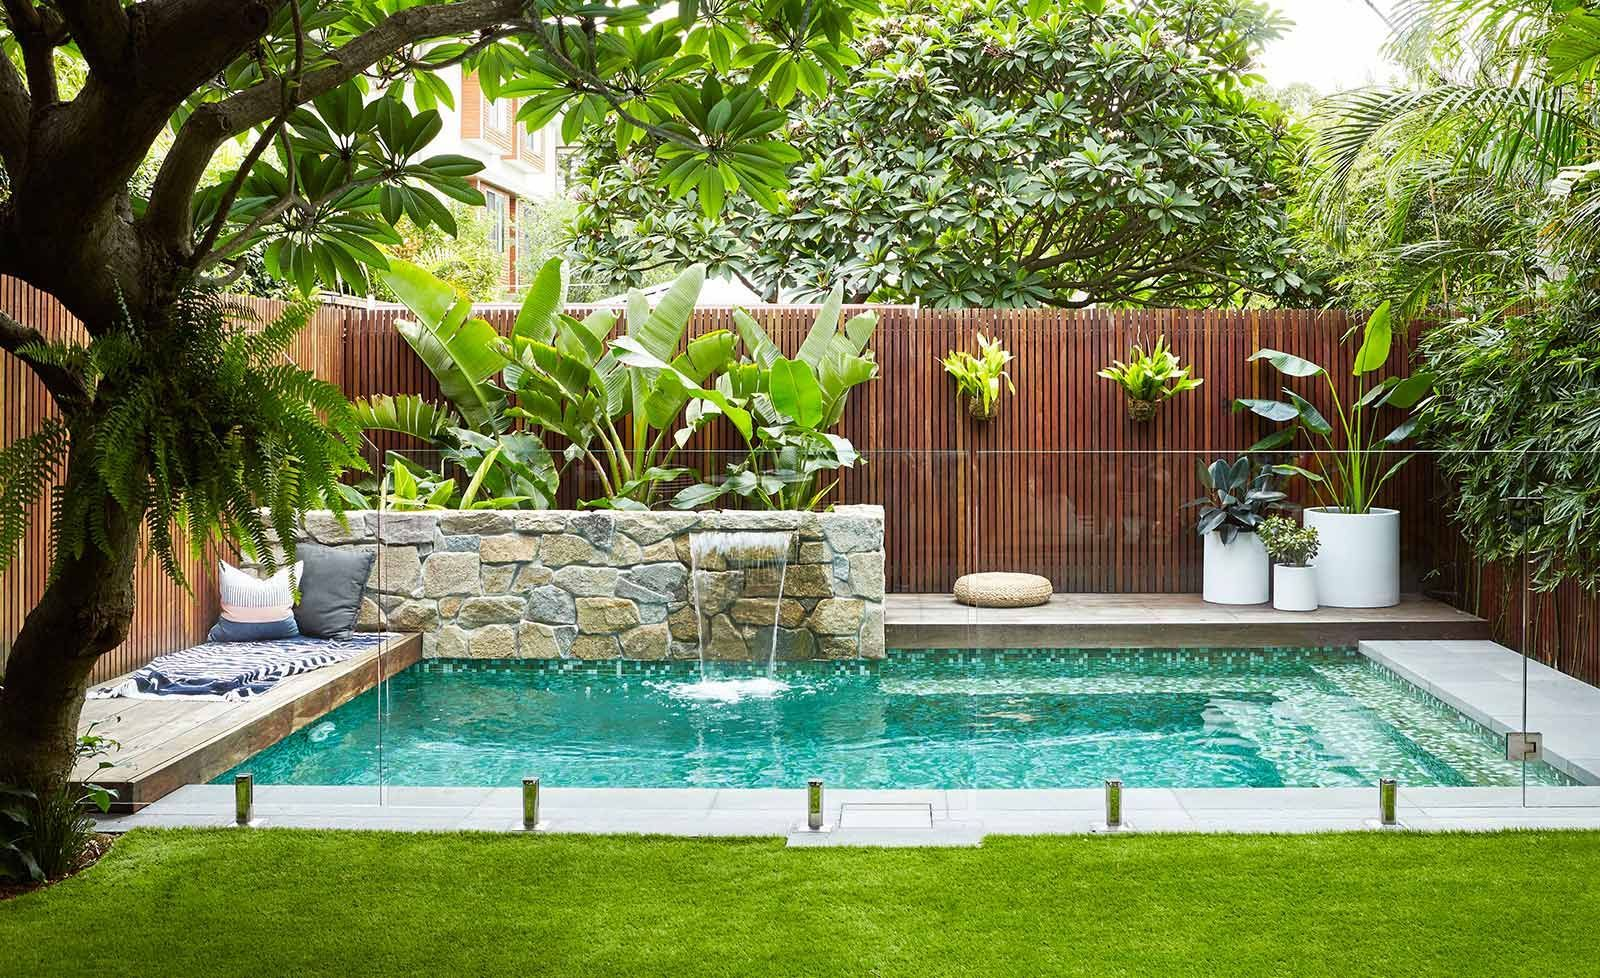 Image Result For Backyard Gardens Sydney Small Backyard Pools Small Pool Design Backyard